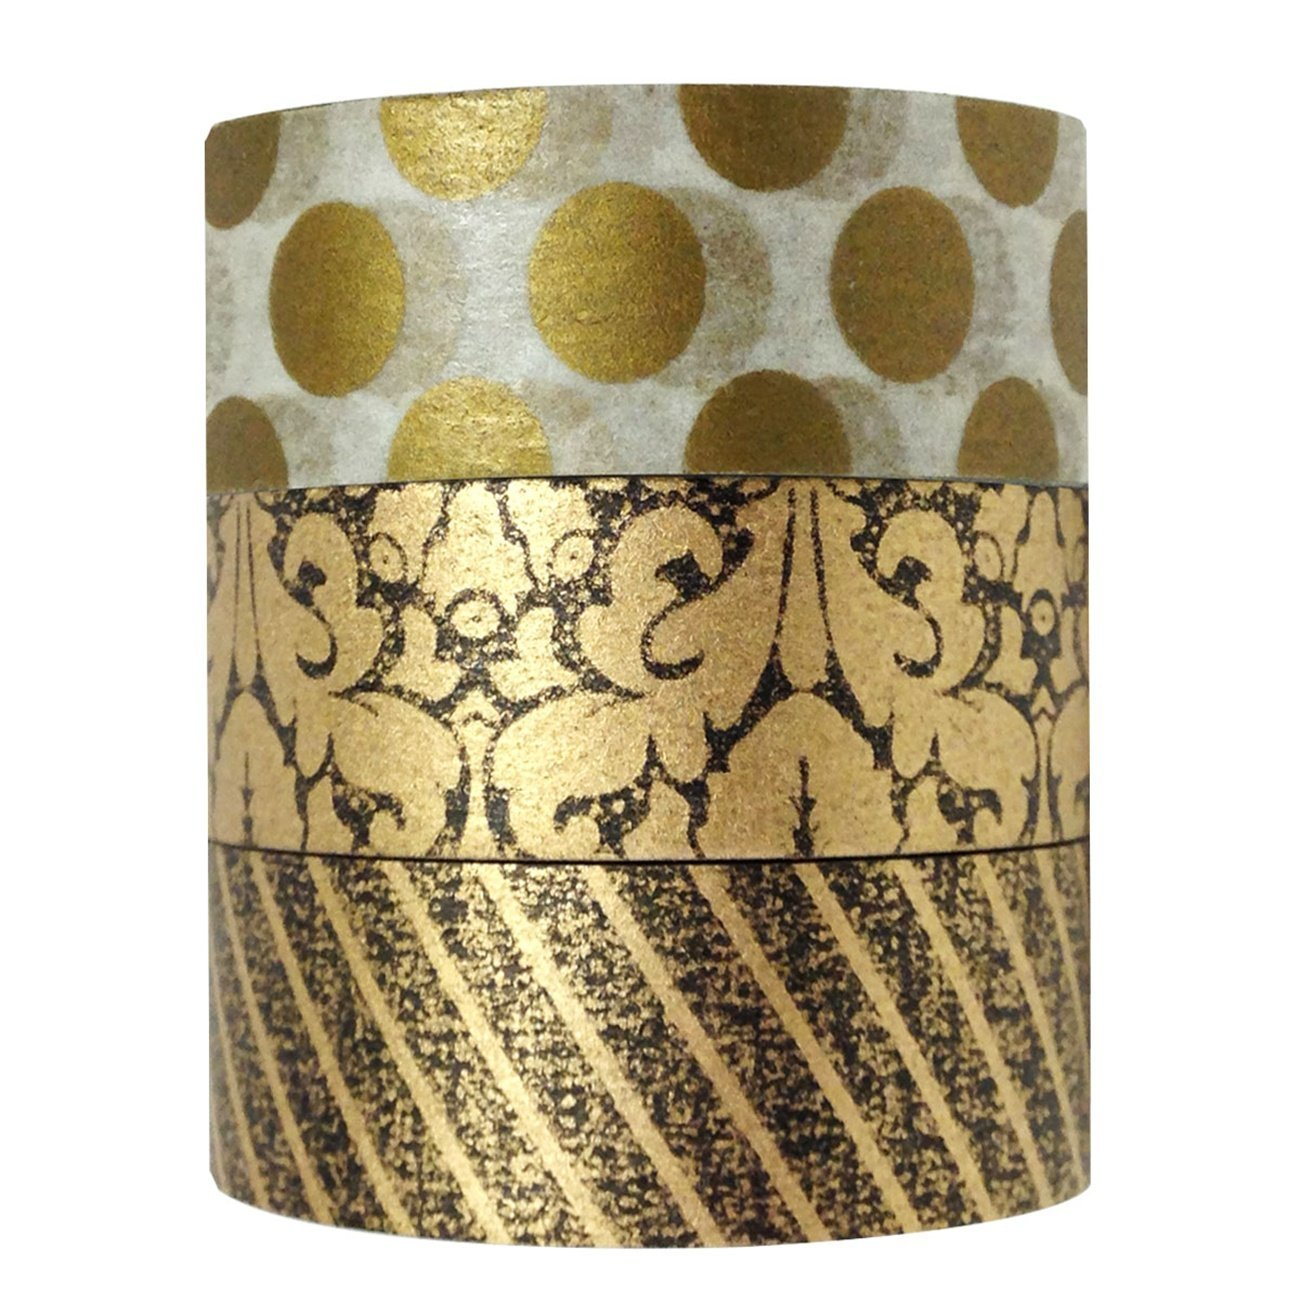 Wrapables Midas Touch Japanese Washi Masking Tape (set of 3)